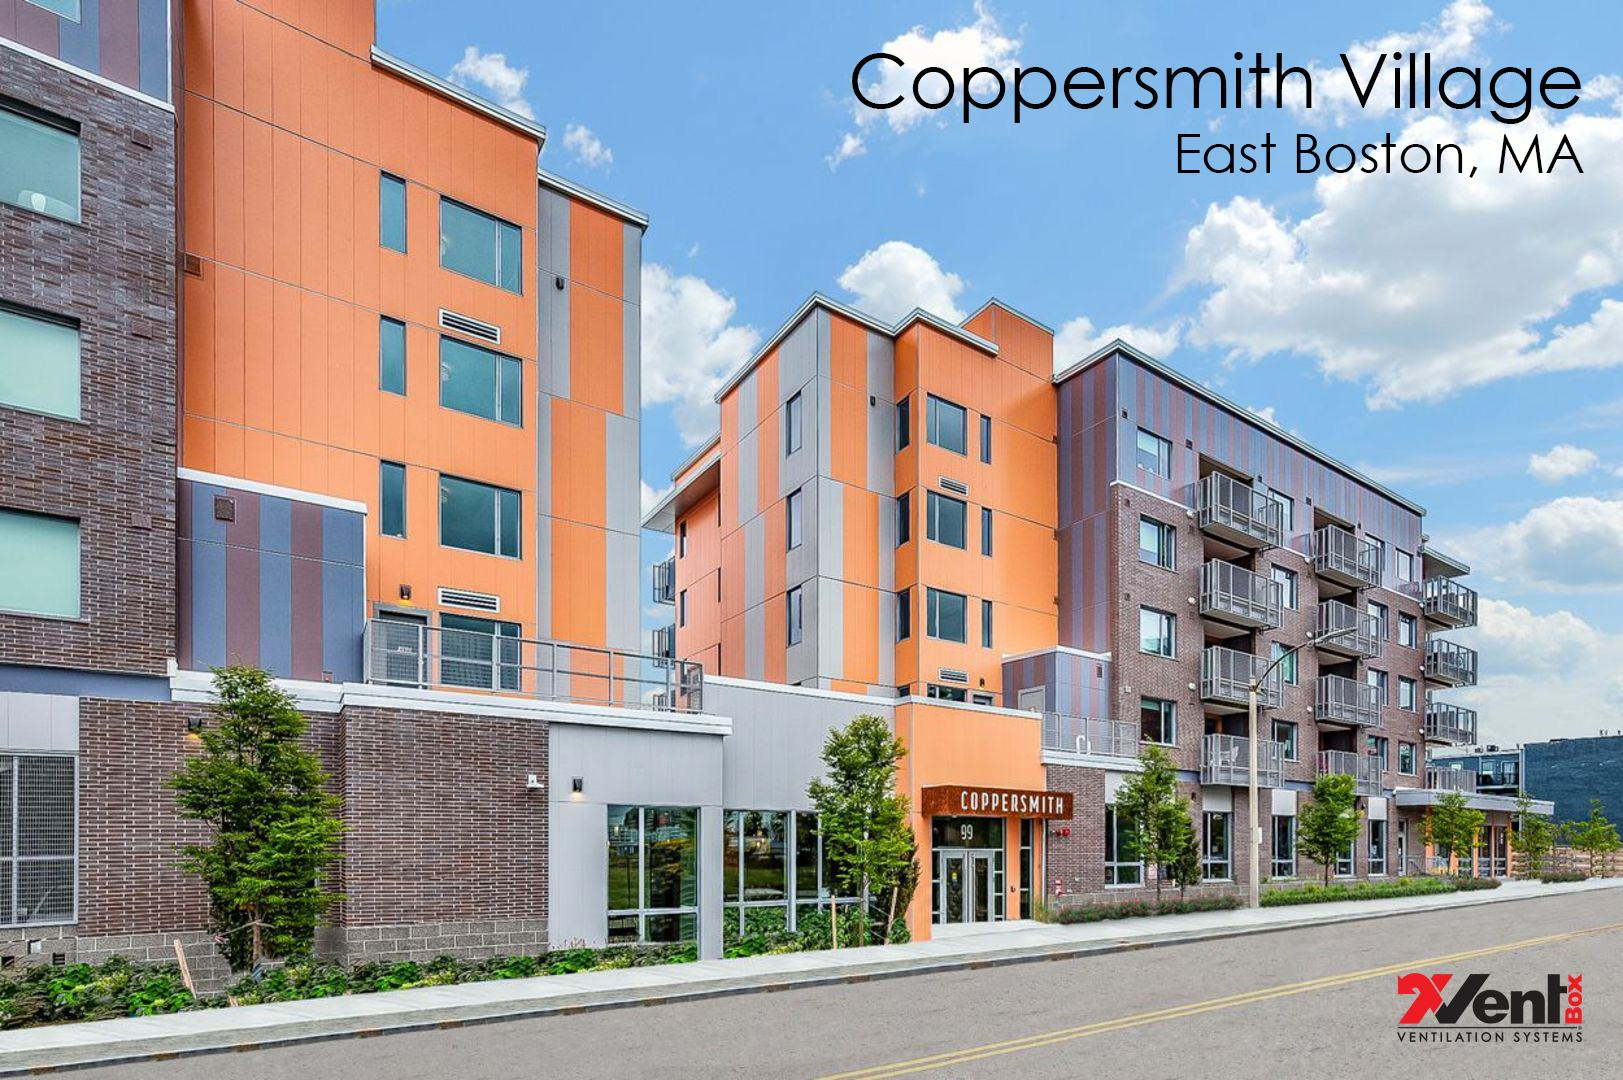 Coppersmith Village